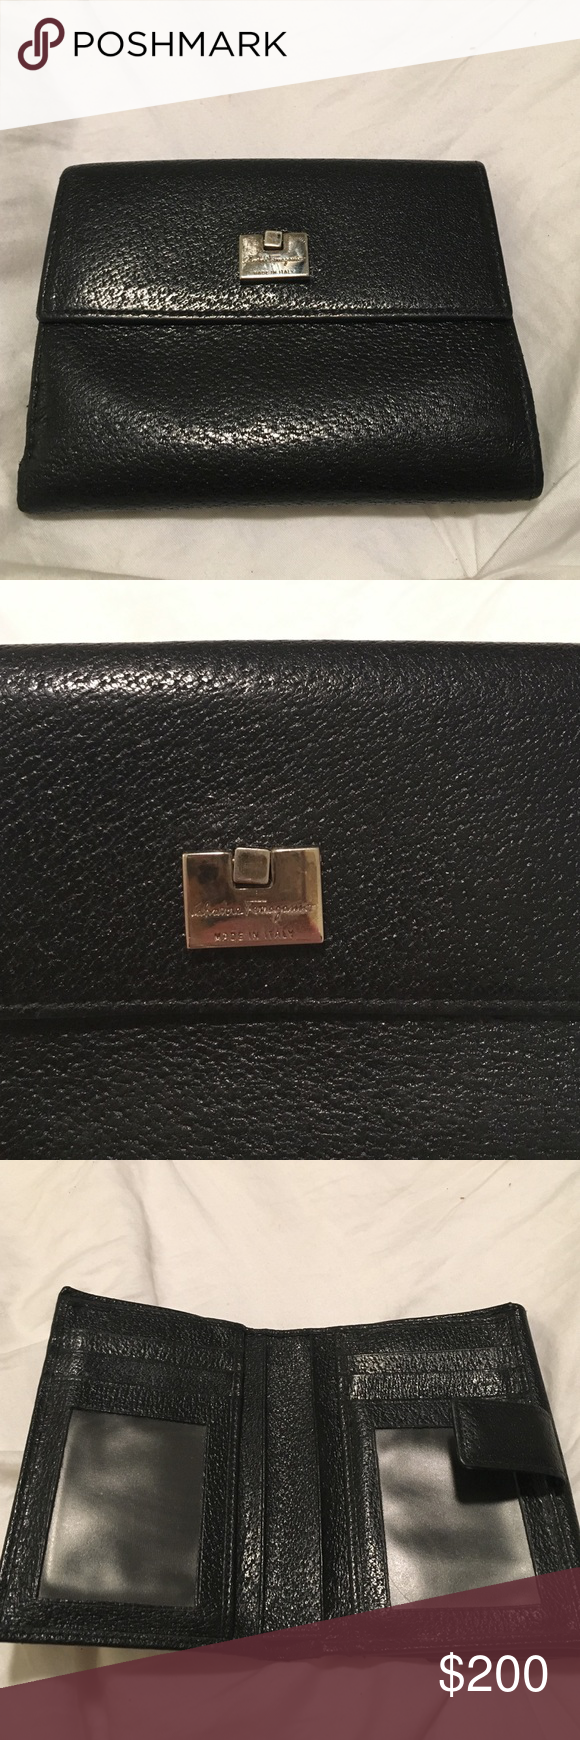 Salvatore Ferragamo black wallet. Black wallet with silver hardware. Scratches on the silver hardware as can be seen from the picture. Wallet has change pouch on one side and credit card slots on the other side. I do not have the box for this item. Authentic. Salvatore Ferragamo Bags Wallets